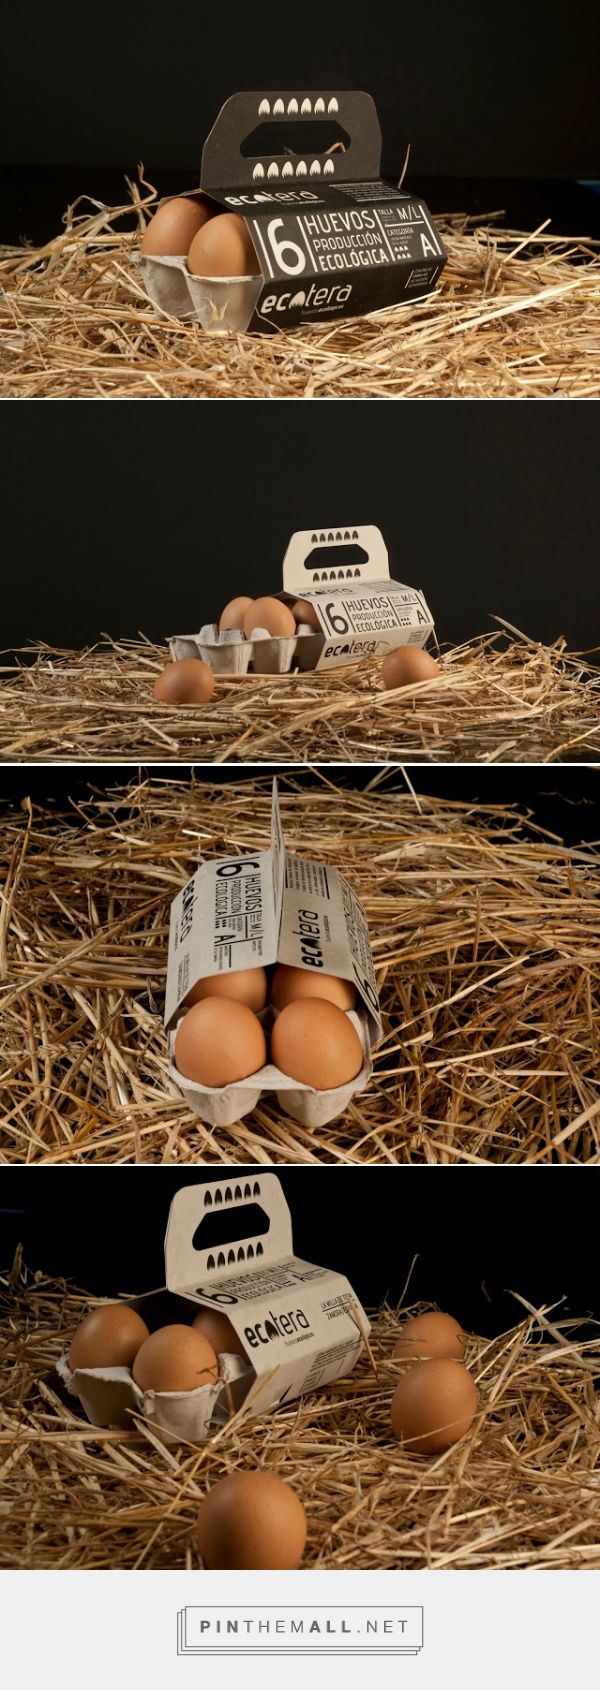 Ecotera Eco Eggs packaging designed by Javier Garduño Estudio de Diseño​ - http://www.packagingoftheworld.com/2015/11/ecotera-eco-eggs.html